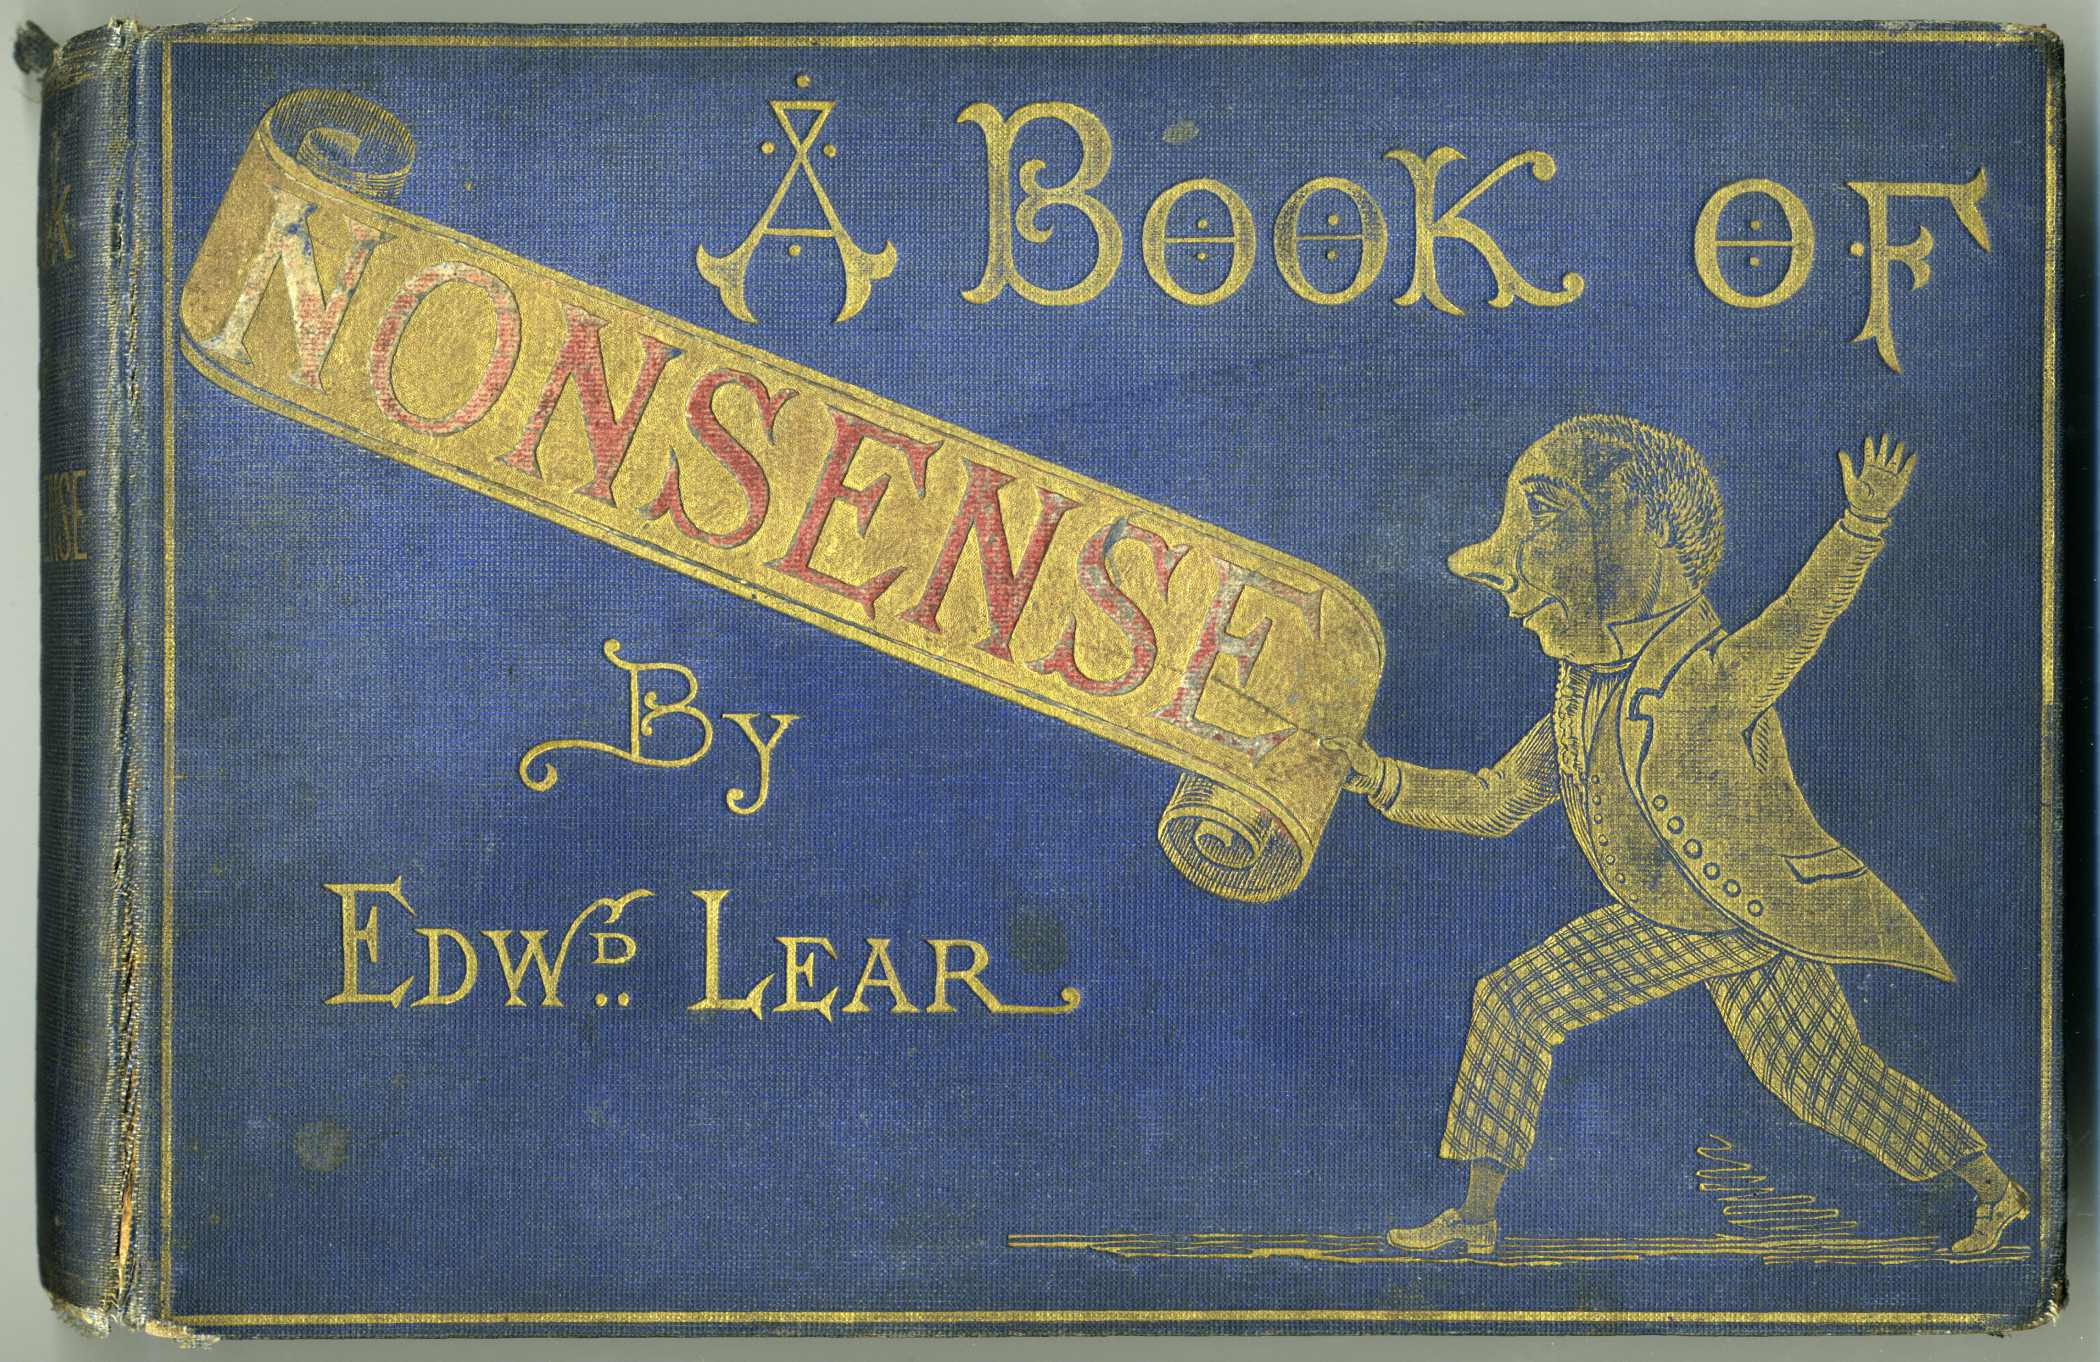 Cover for A Book of Nonsense by Edward Lear (ca 1875 James Miller edition)